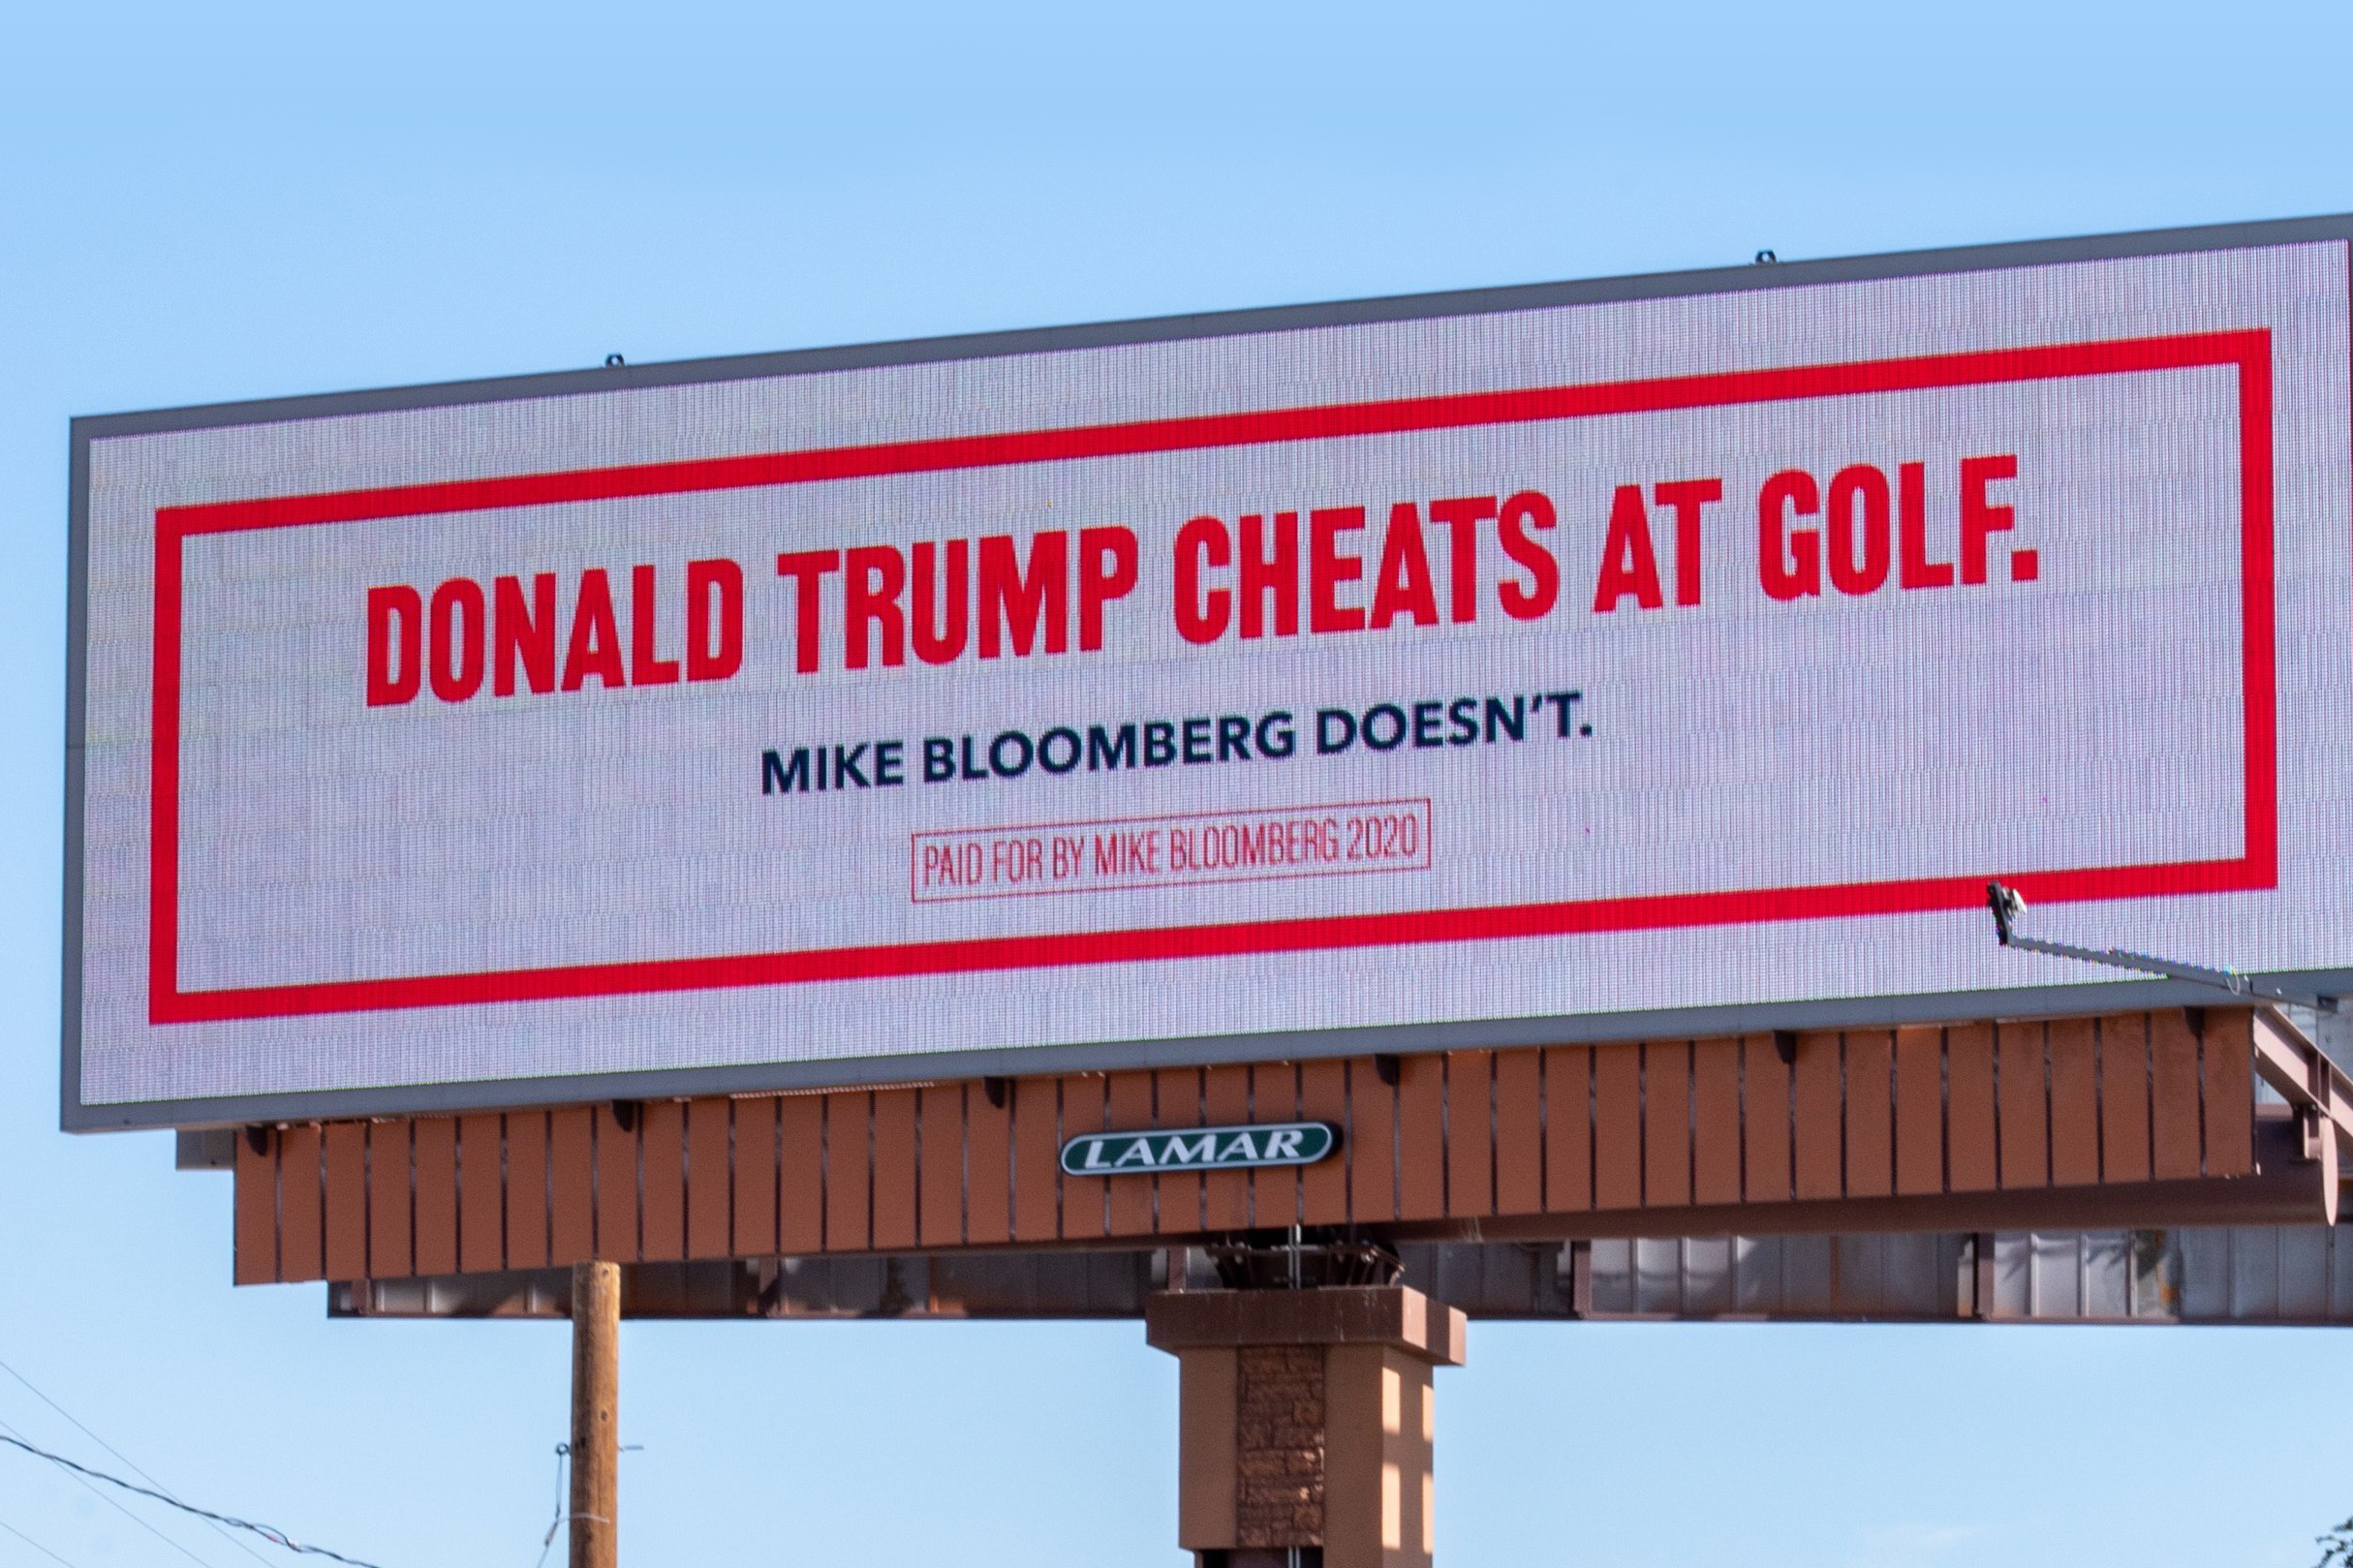 Bloomberg trolls President Trump with mocking billboards, but they backfire as memes